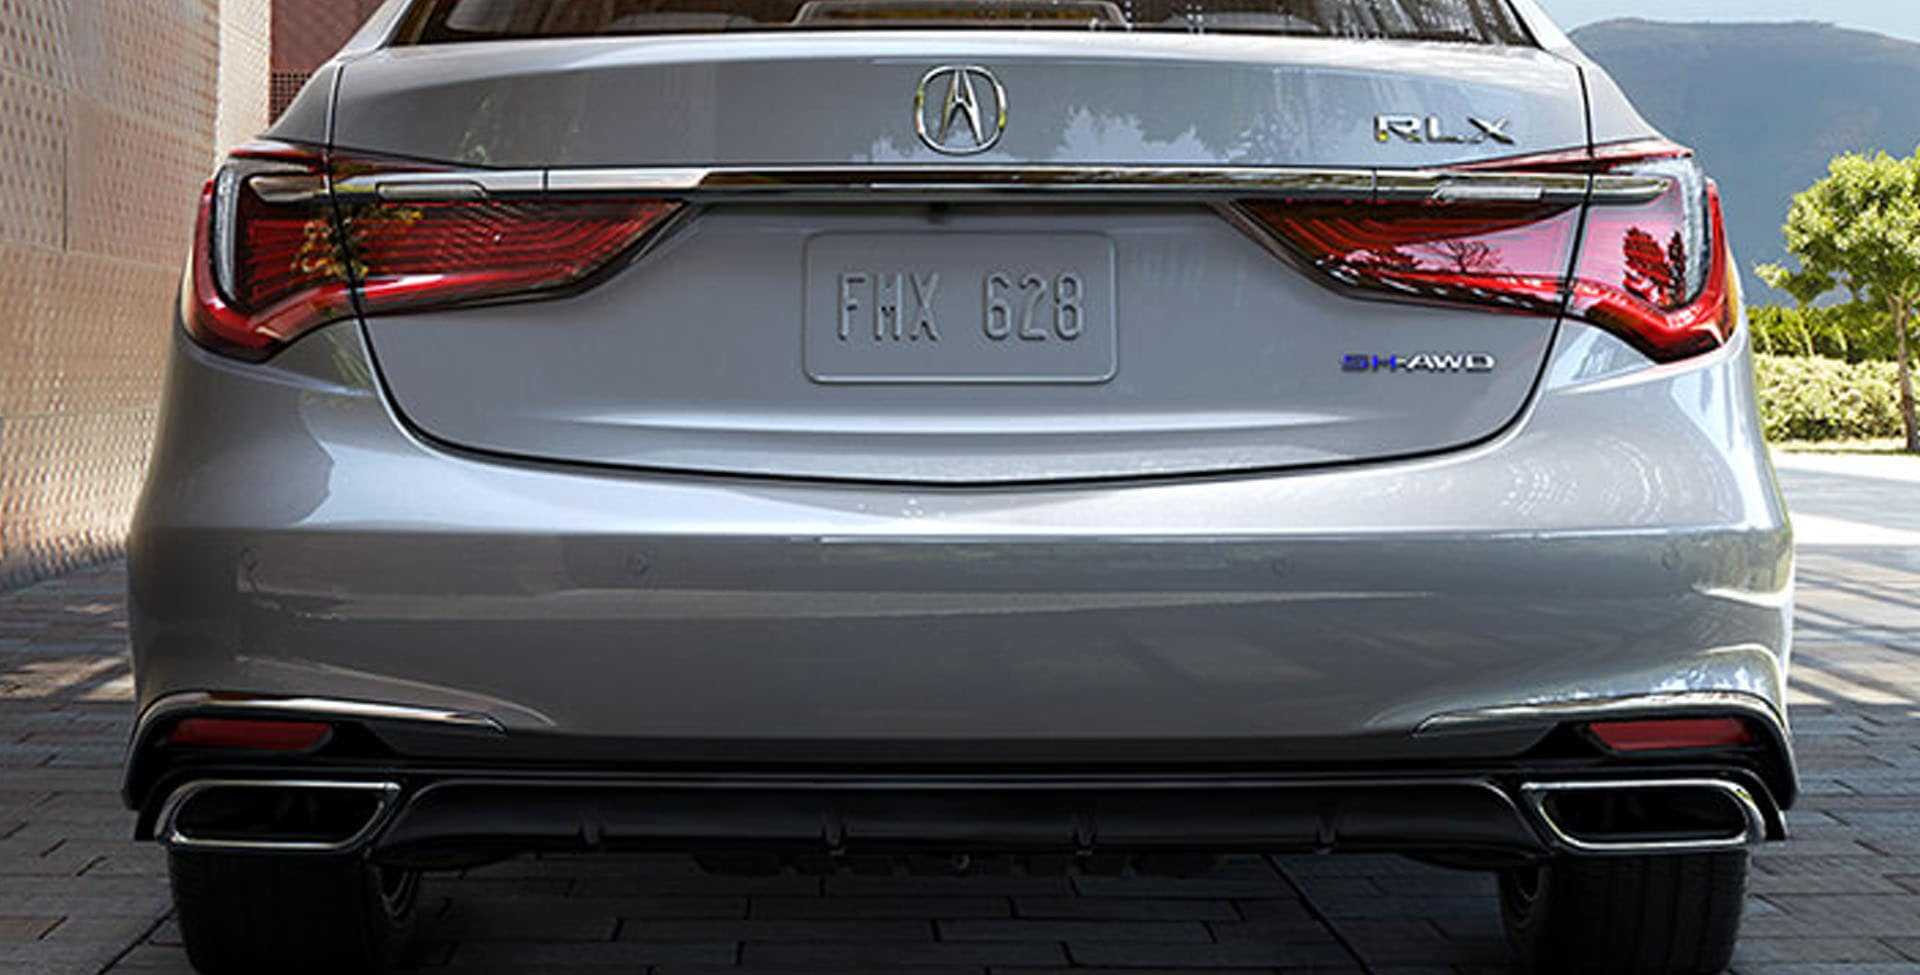 Acura RLX exhaust finishers